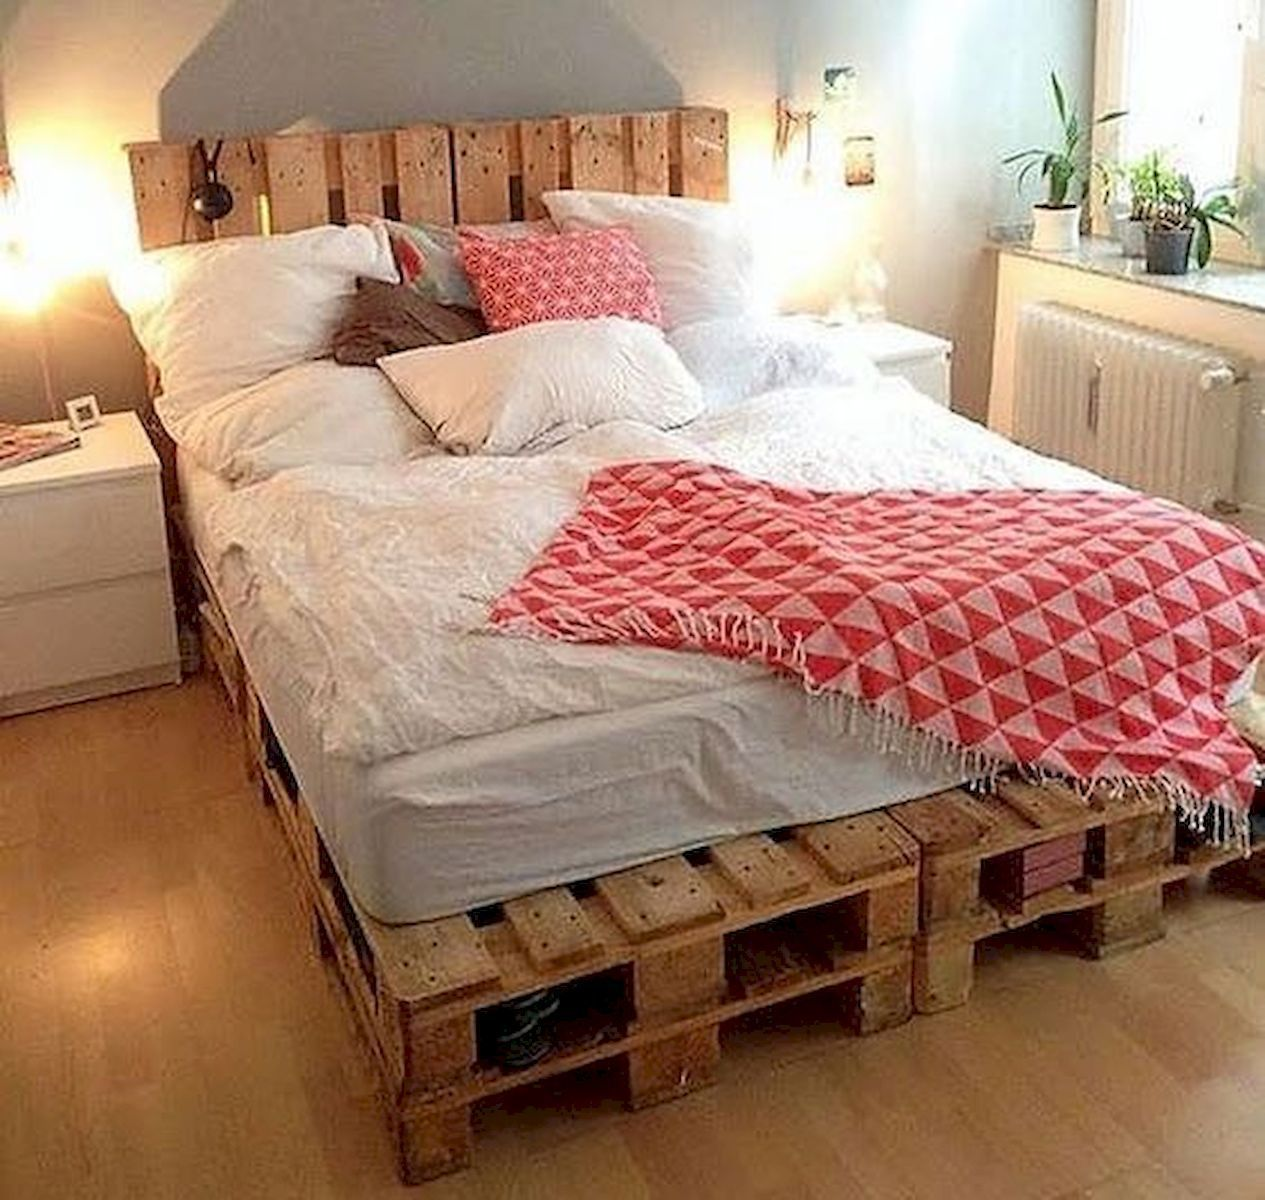 50 Creative Recycled Diy Projects Pallet Beds Design Ideas 13 Pallet Furniture Bedroom Remodel Bedroom Diy Pallet Bed